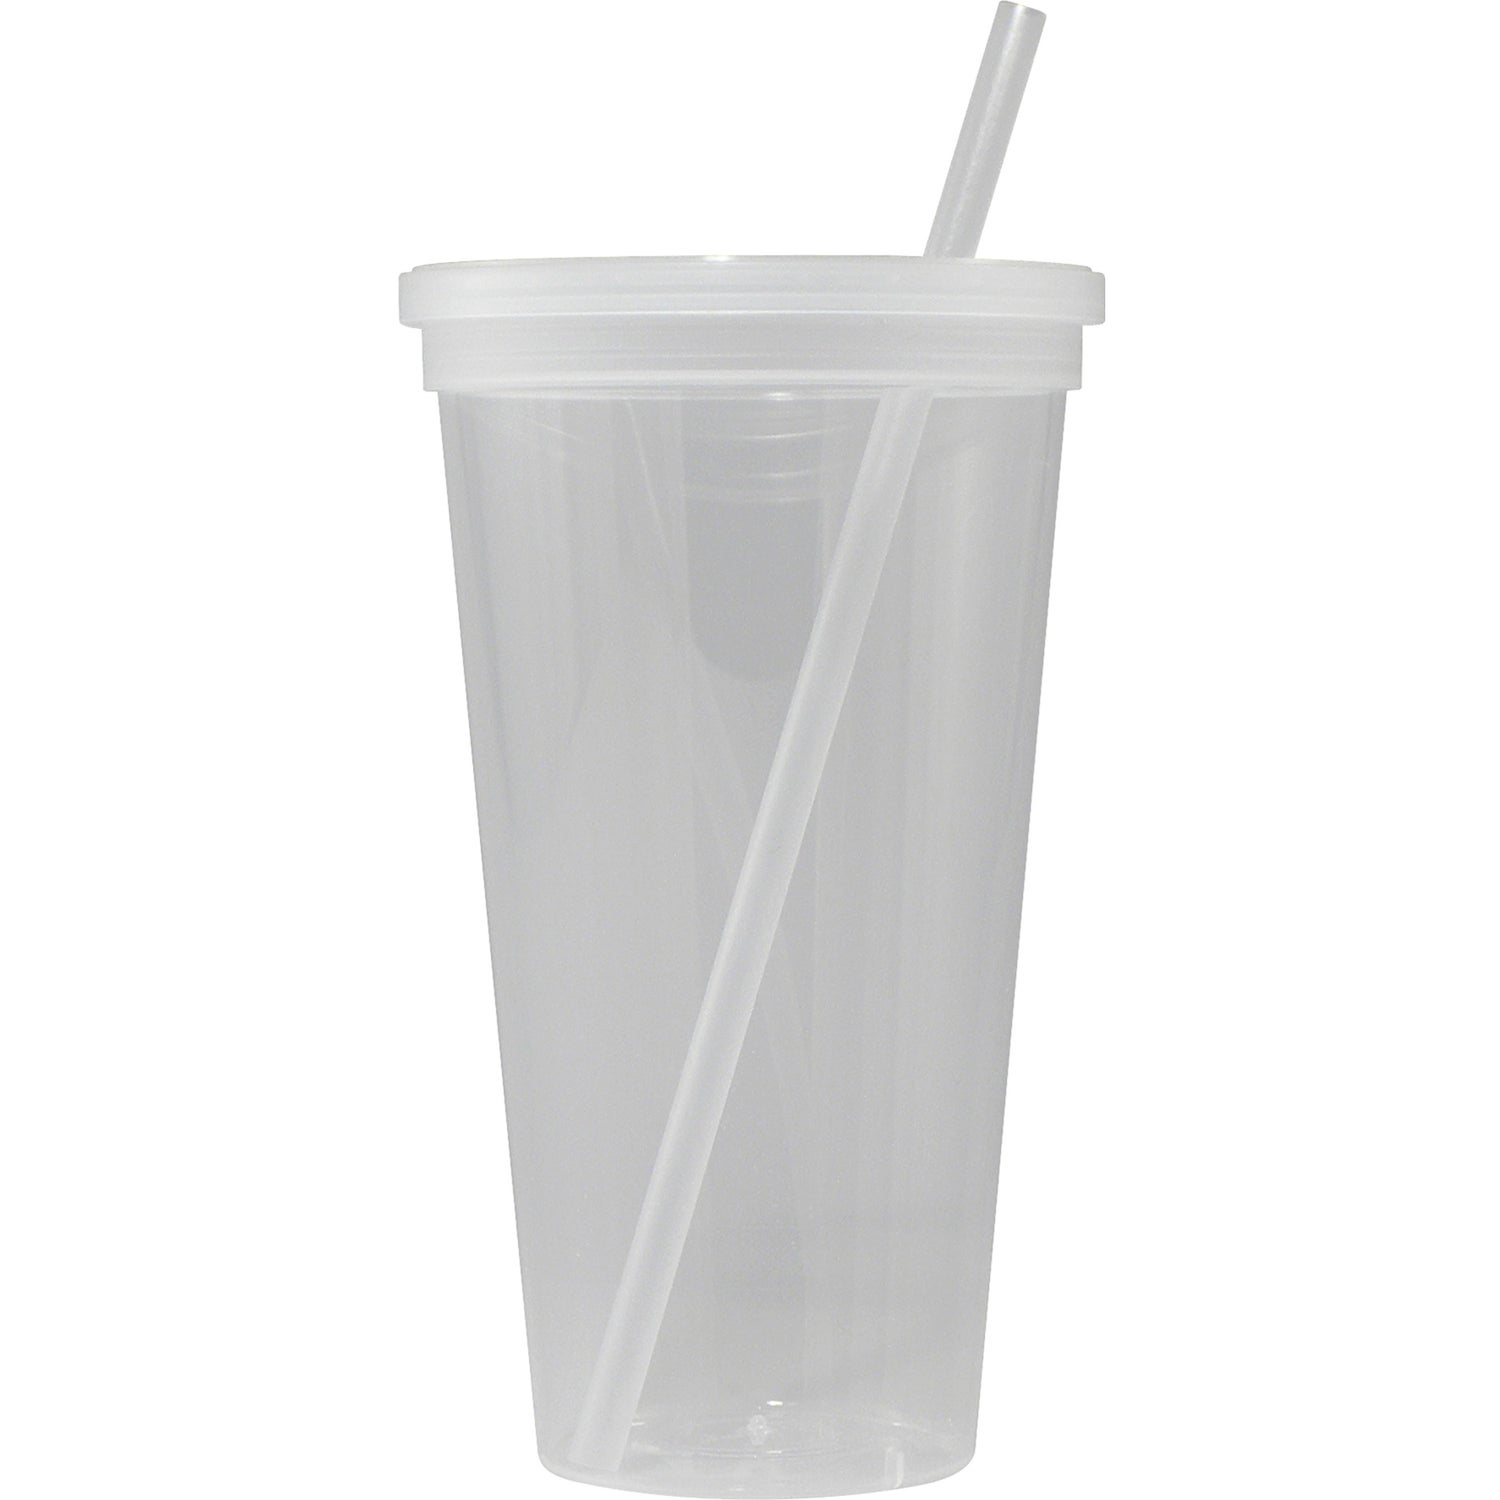 5be2676297a CLICK HERE to Order 24 Oz. Jewel Tumbler with Lid and Straws Printed with  Your Logo for $2.12 Ea.